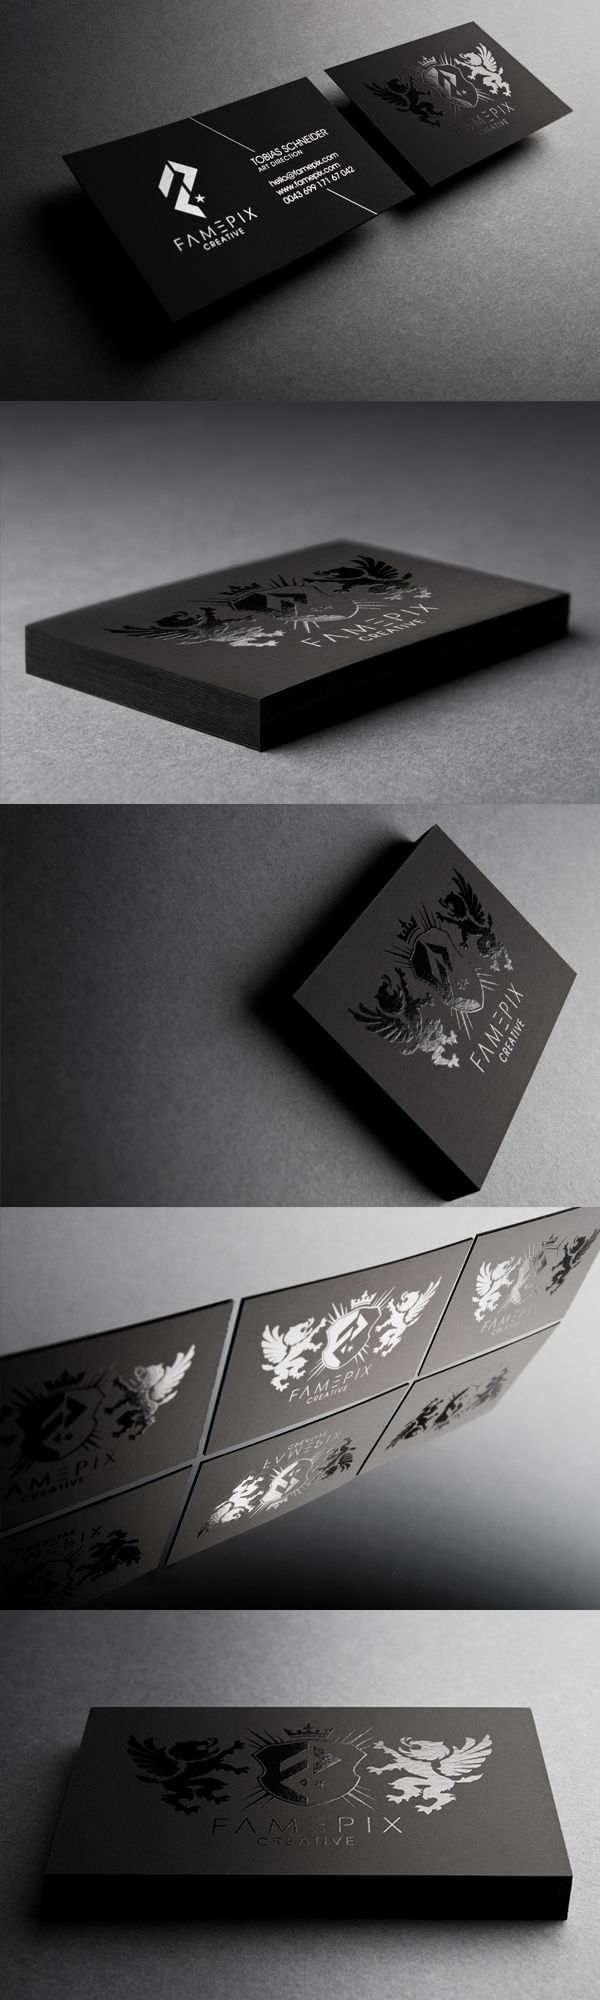 Printed on plike paper 260g silver offset pantone and spot black on black businesscards famepix business cards creattica magicingreecefo Image collections